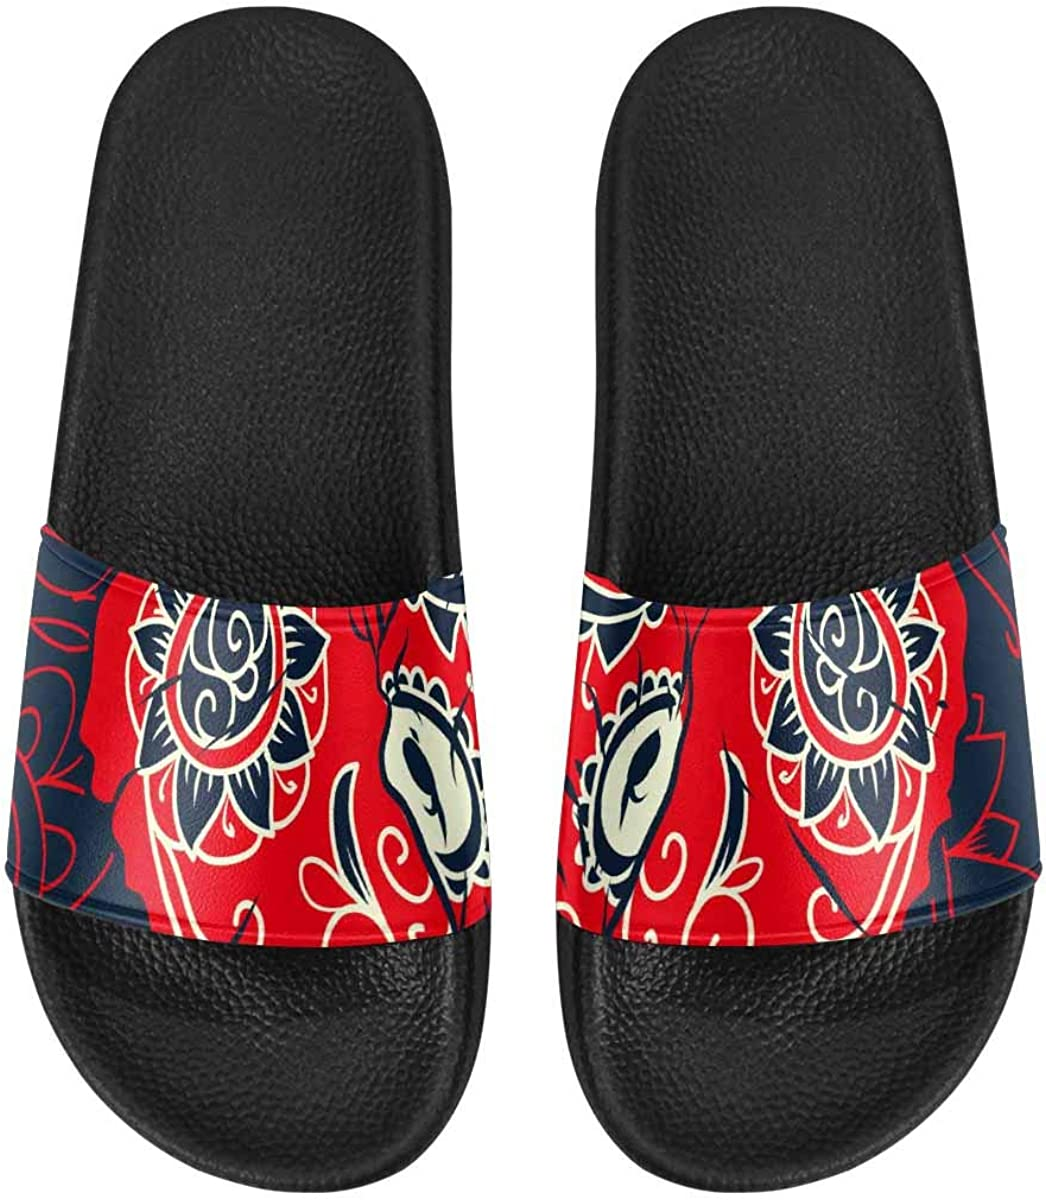 InterestPrint Women's Stylish Slipper Sandals Made from Soft Material Colorful Sugar Skull